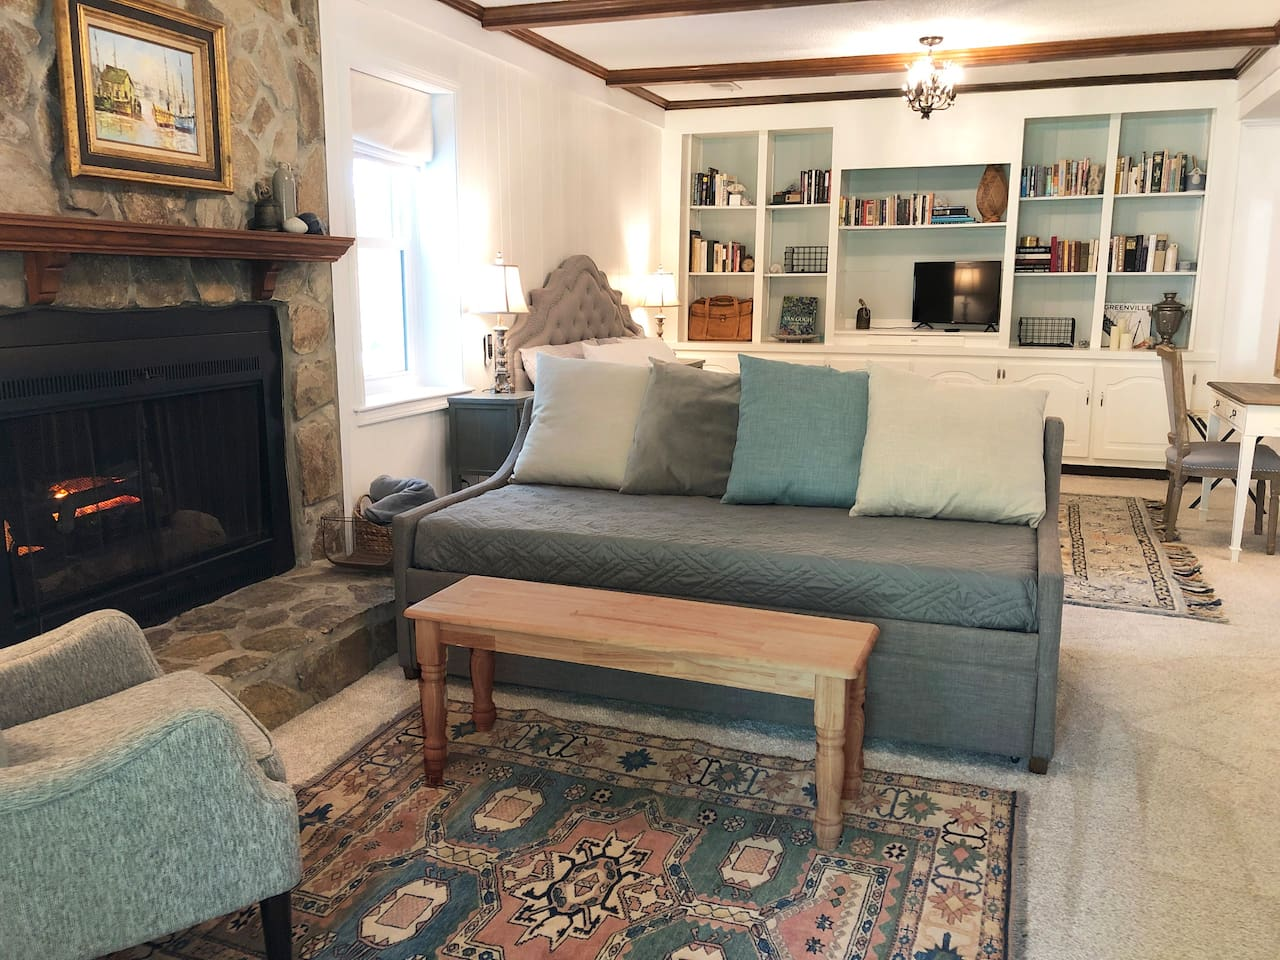 French country inspired guest suite. Ideal for business travelers, romantic couples, or families. Electric log fireplace makes the room feel extra pleasant.